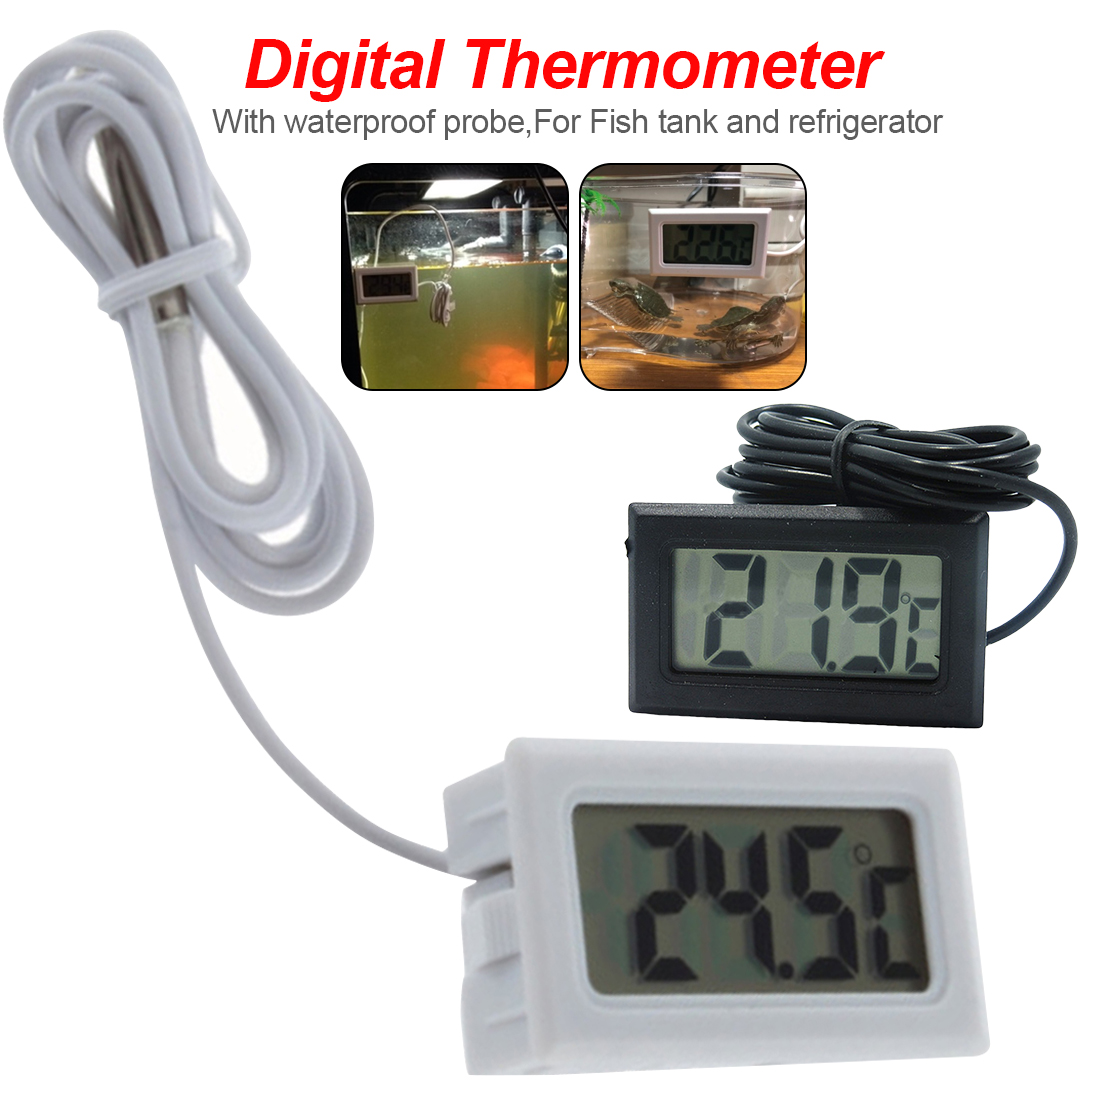 Aquarium Freezer Refrigerator Digital thermometer Electronic thermometer With waterproof probe -<font><b>50</b></font>~<font><b>110C</b></font> LCD Display image